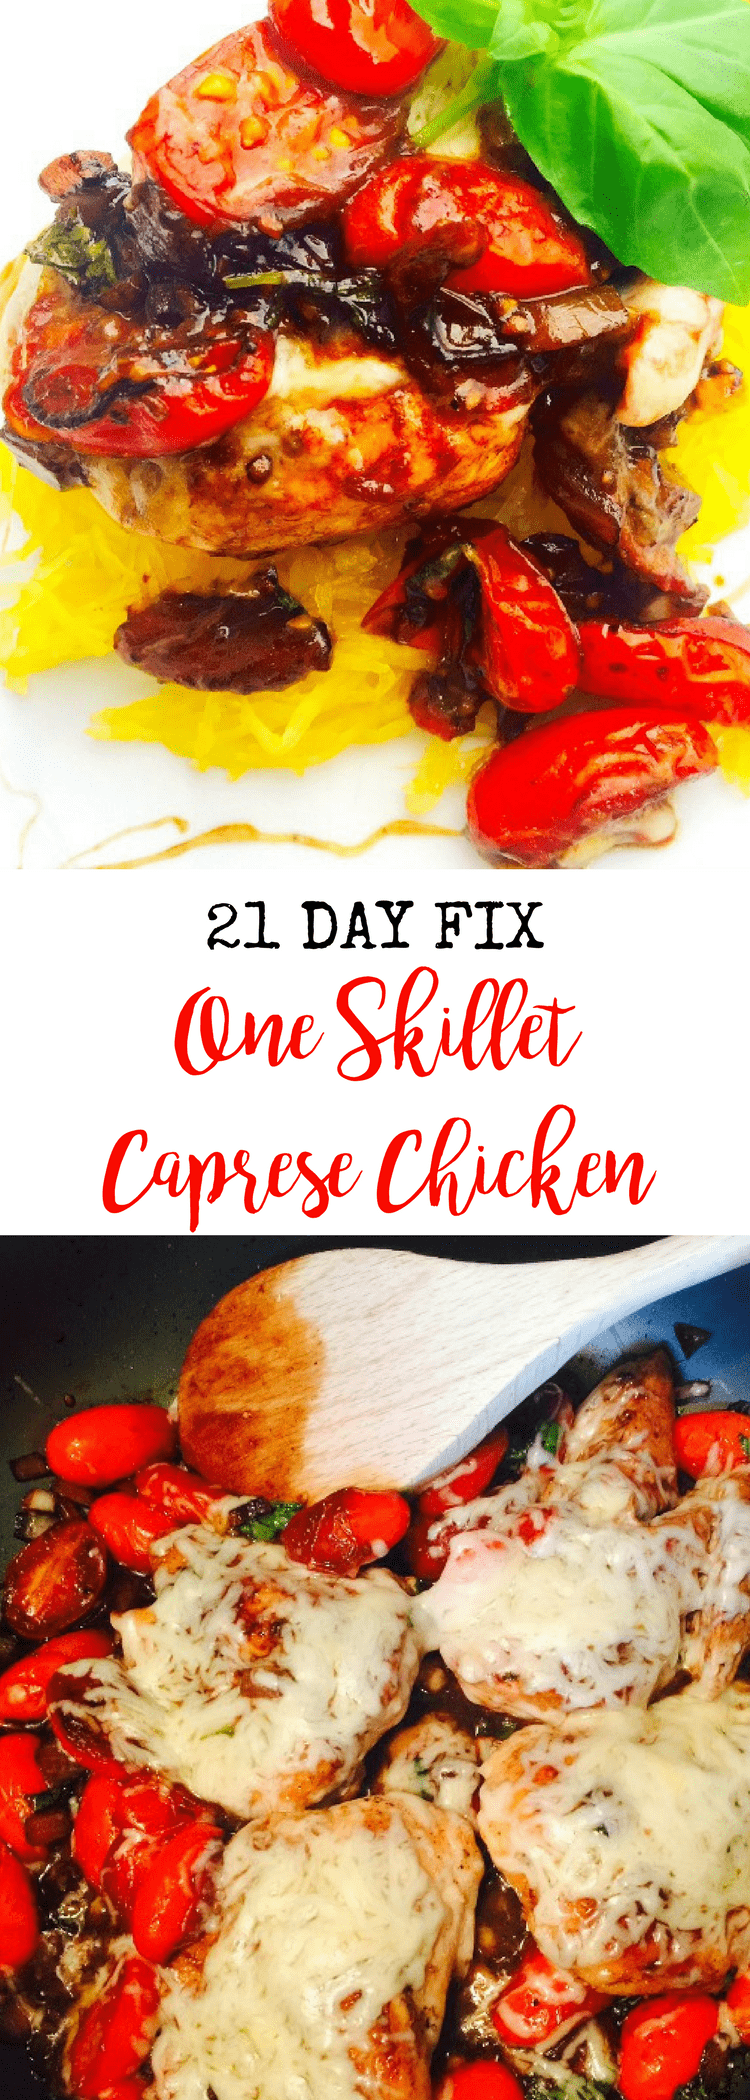 21 Day Fix One Skillet Caprese Chicken | Confessions of a Fit Foodie